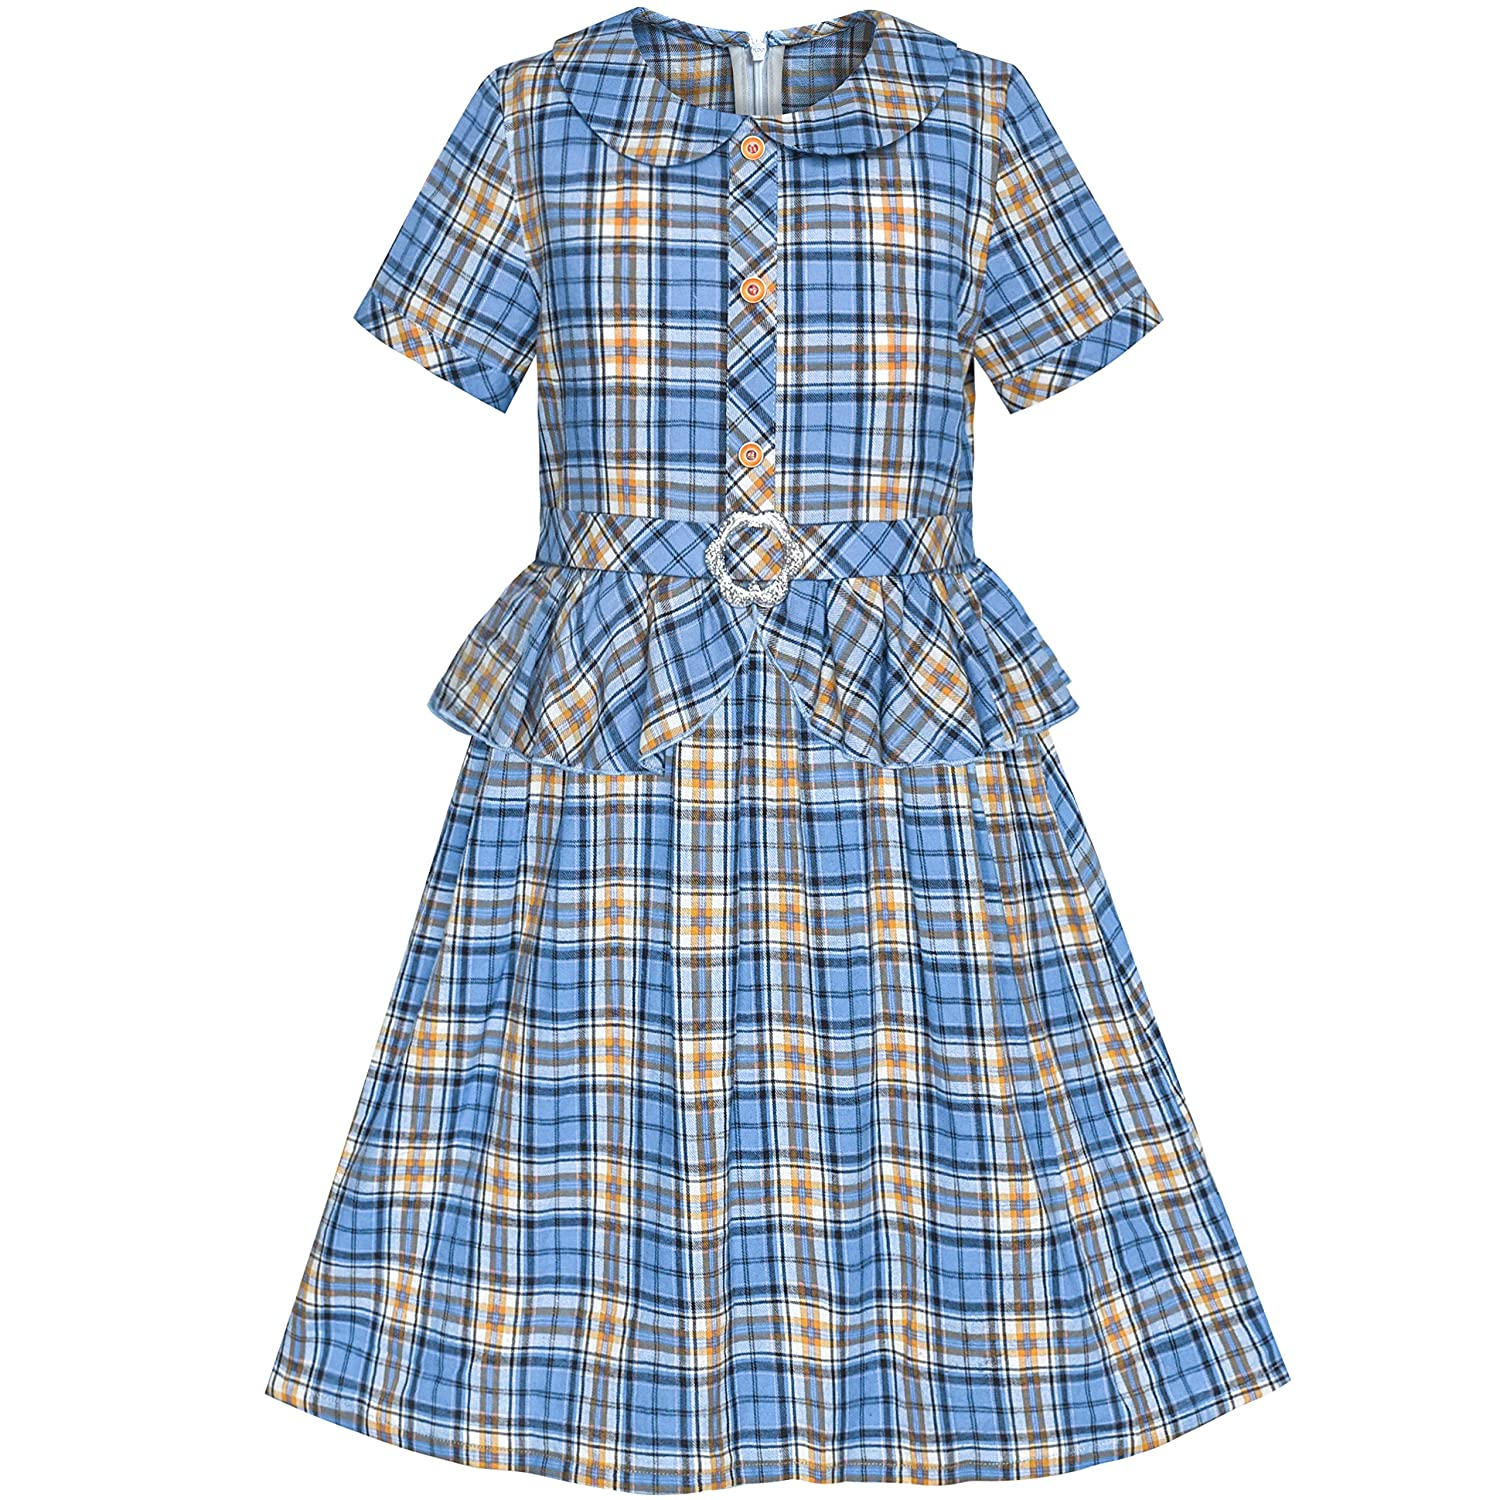 Sunny Fashion Girls Dress 2-in-1 Blue Tartan School Uniform Pleated Hem Belted